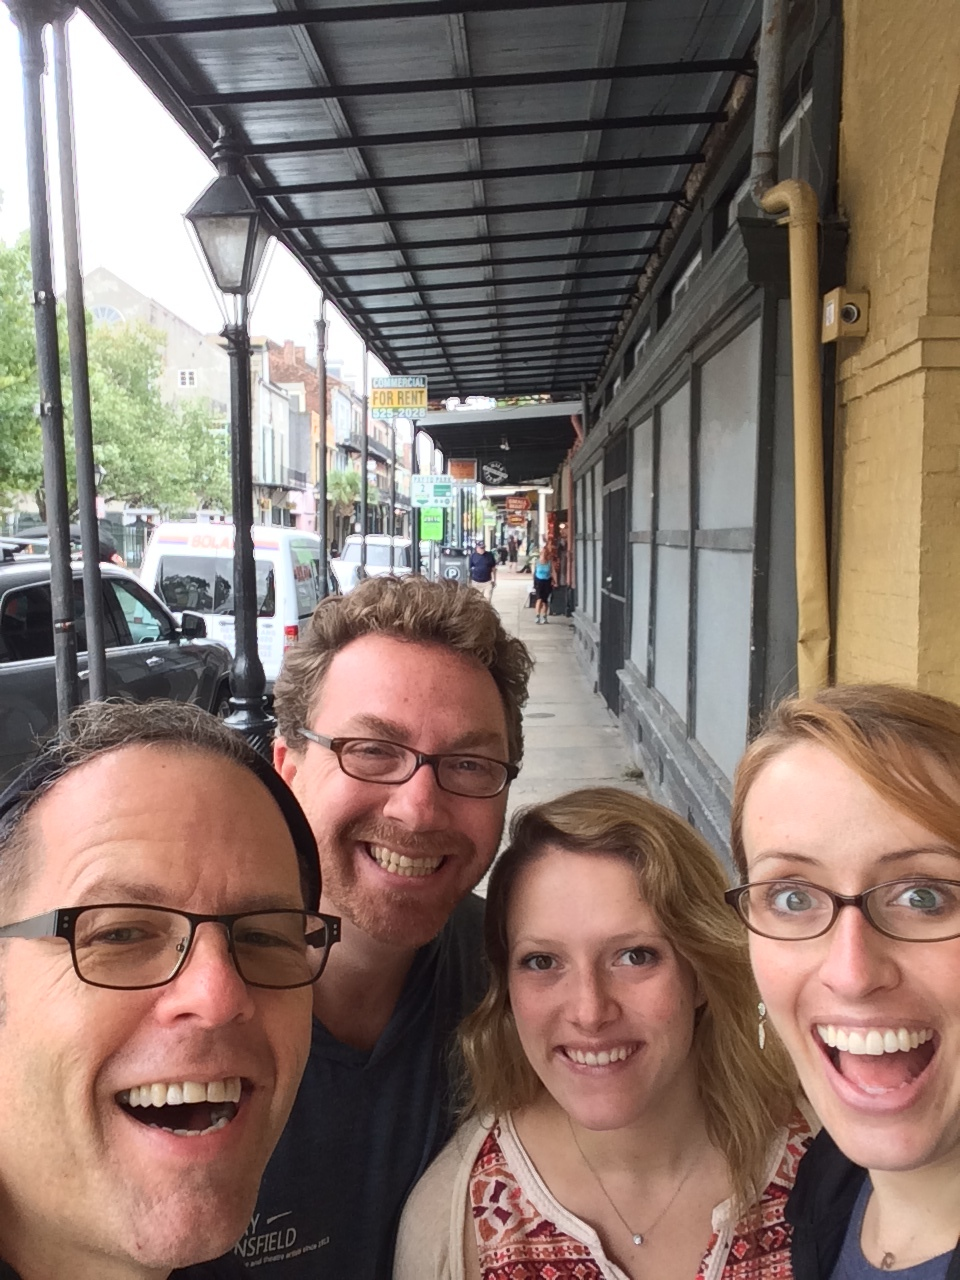 Greg Triggs, Rob Schiffmann, Megan Reilly, and Katie Hammond in Louisiana this past fall.